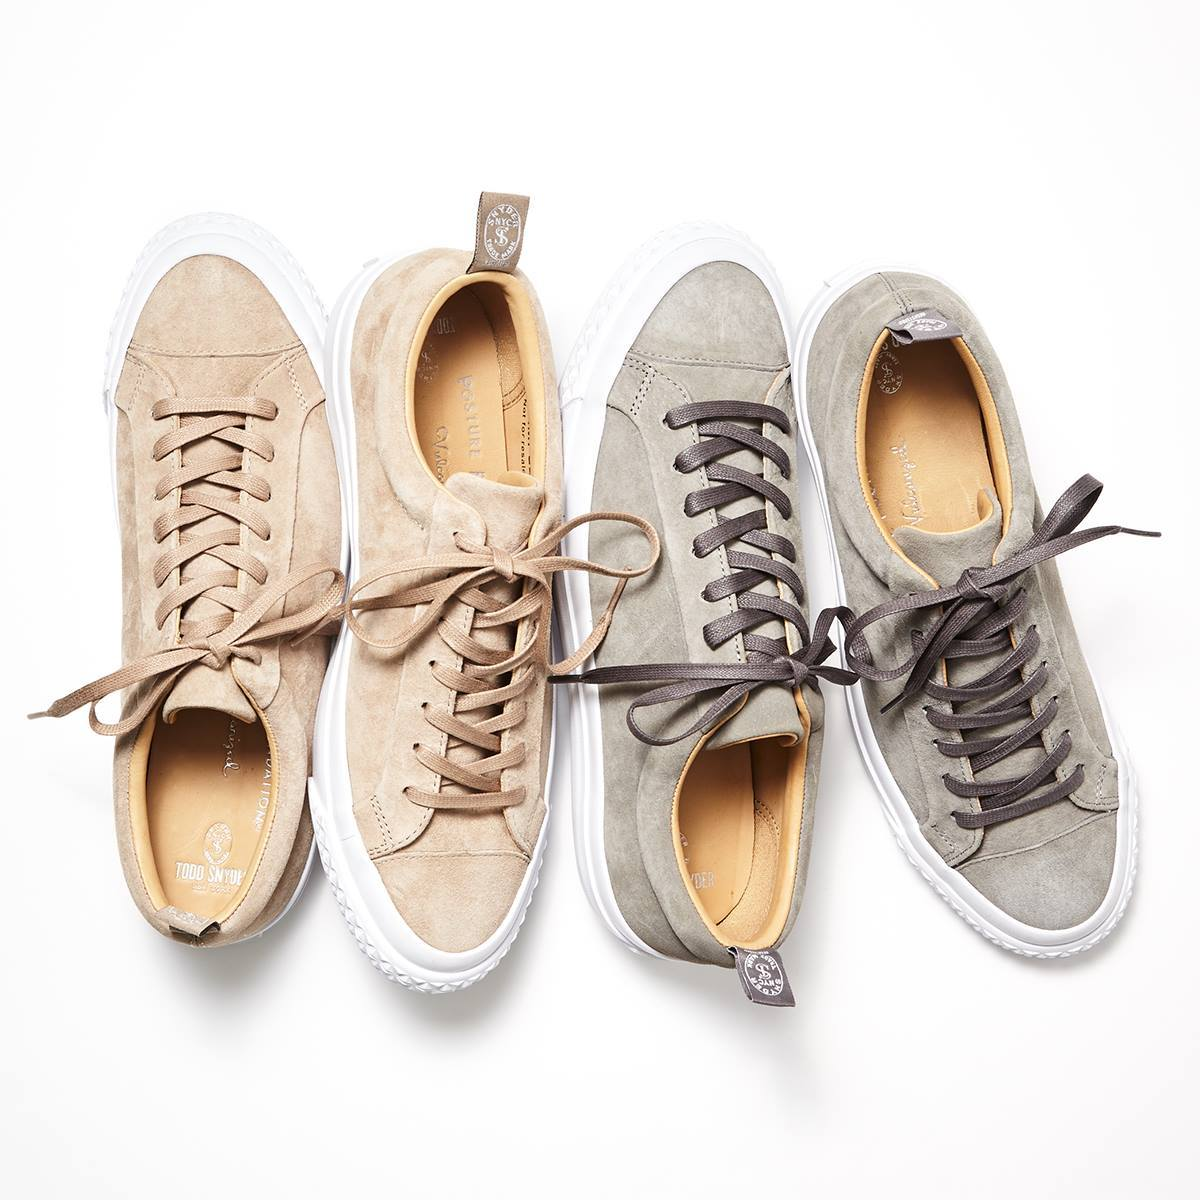 Todd Snyder x PF Flyers Rambler Low 2.0